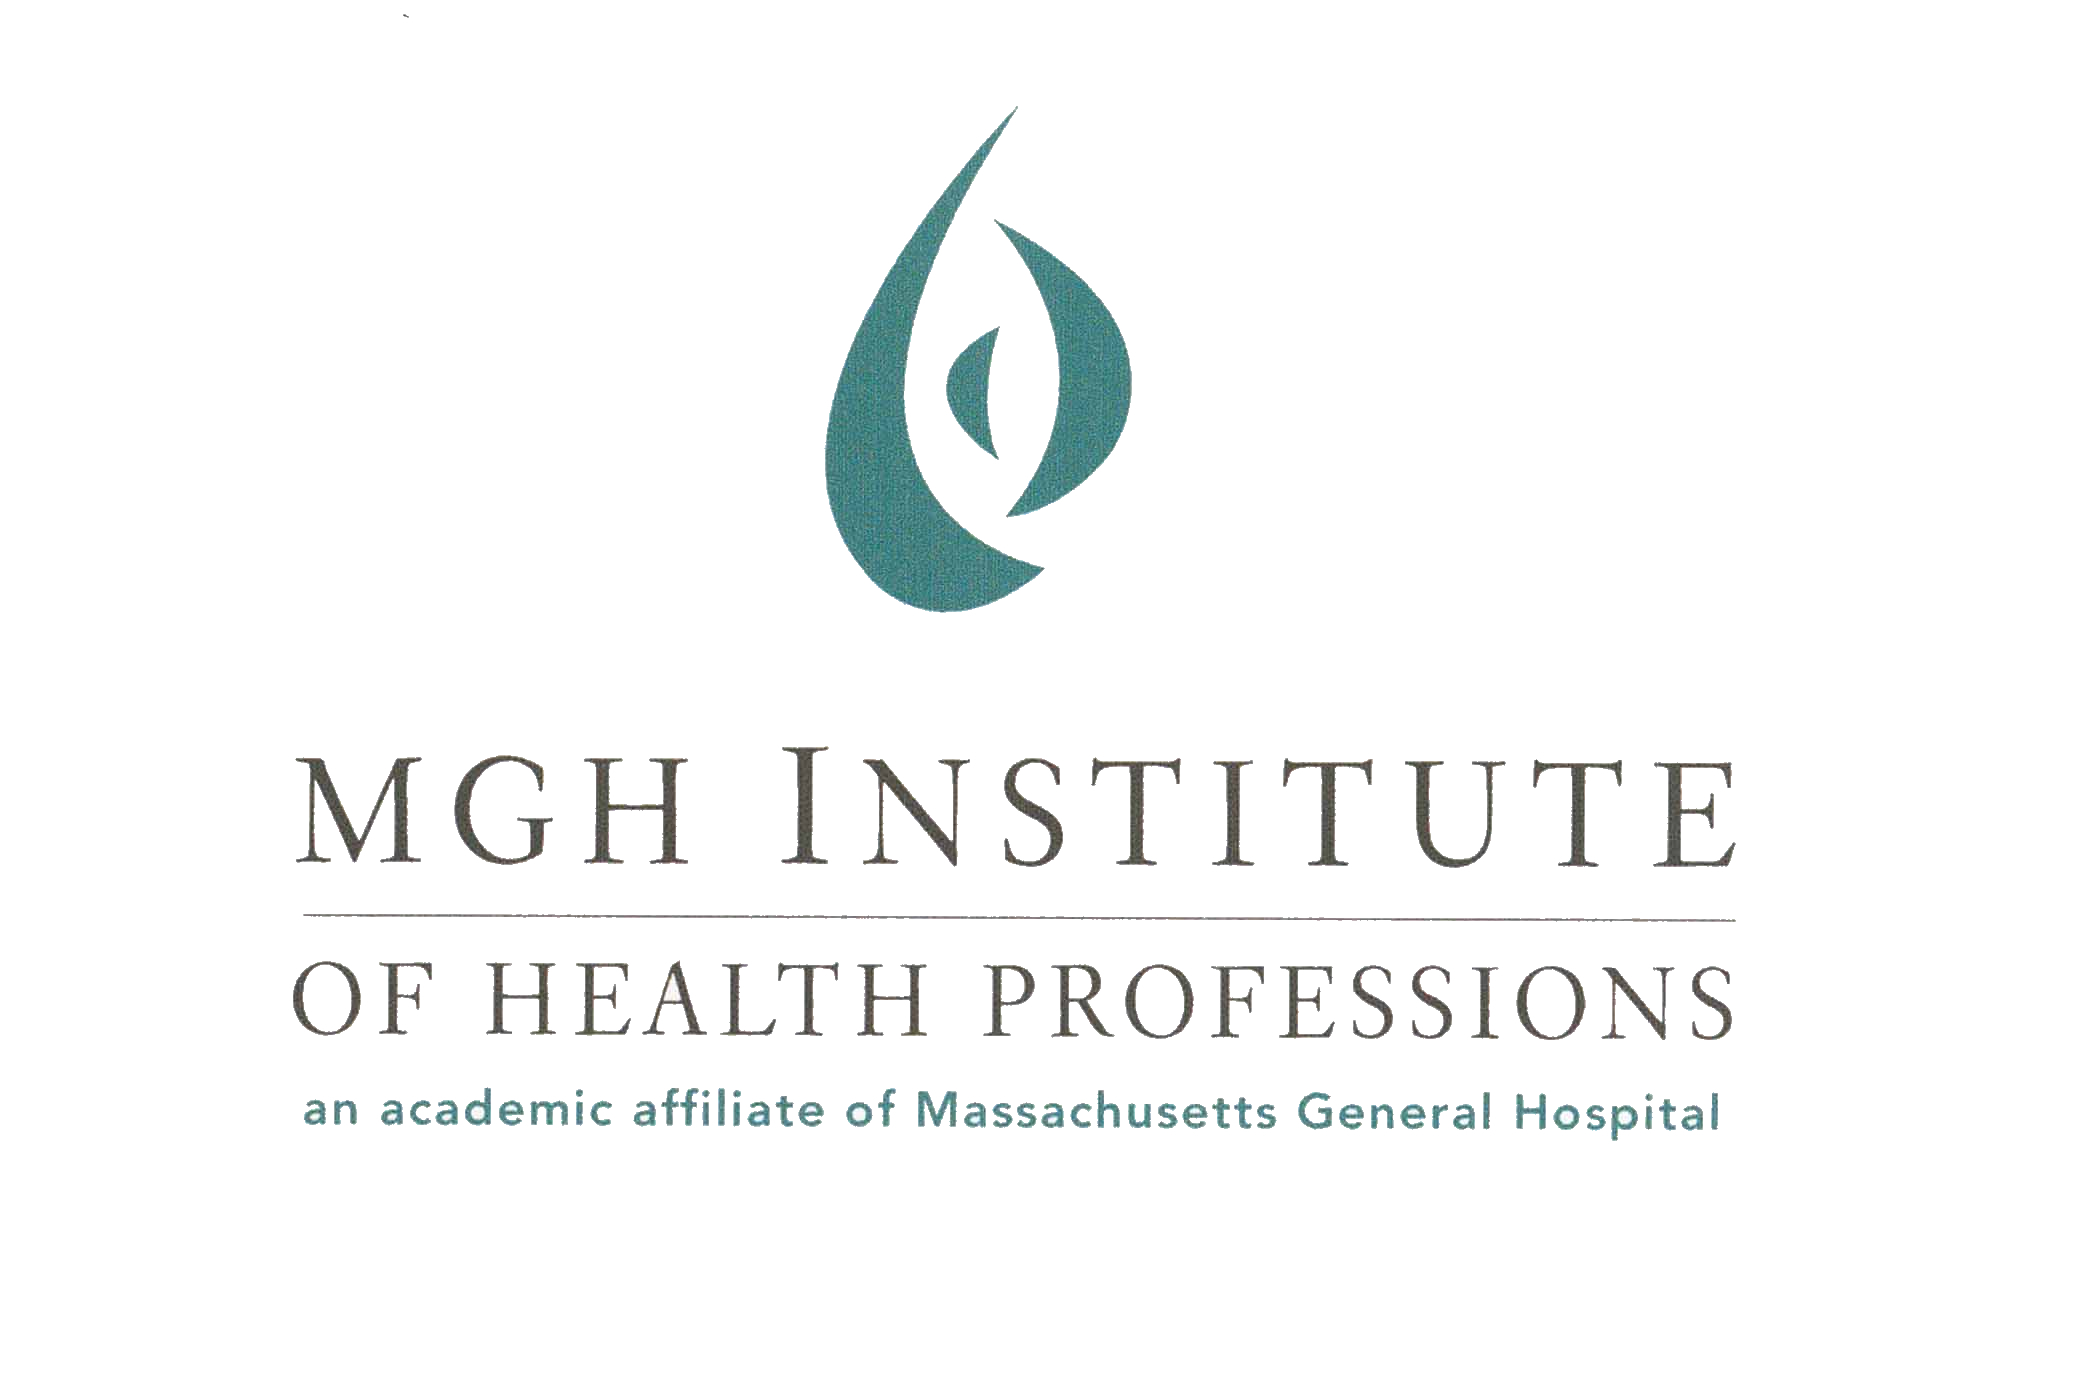 MGH Institute of Health Professions Names Rika Judd